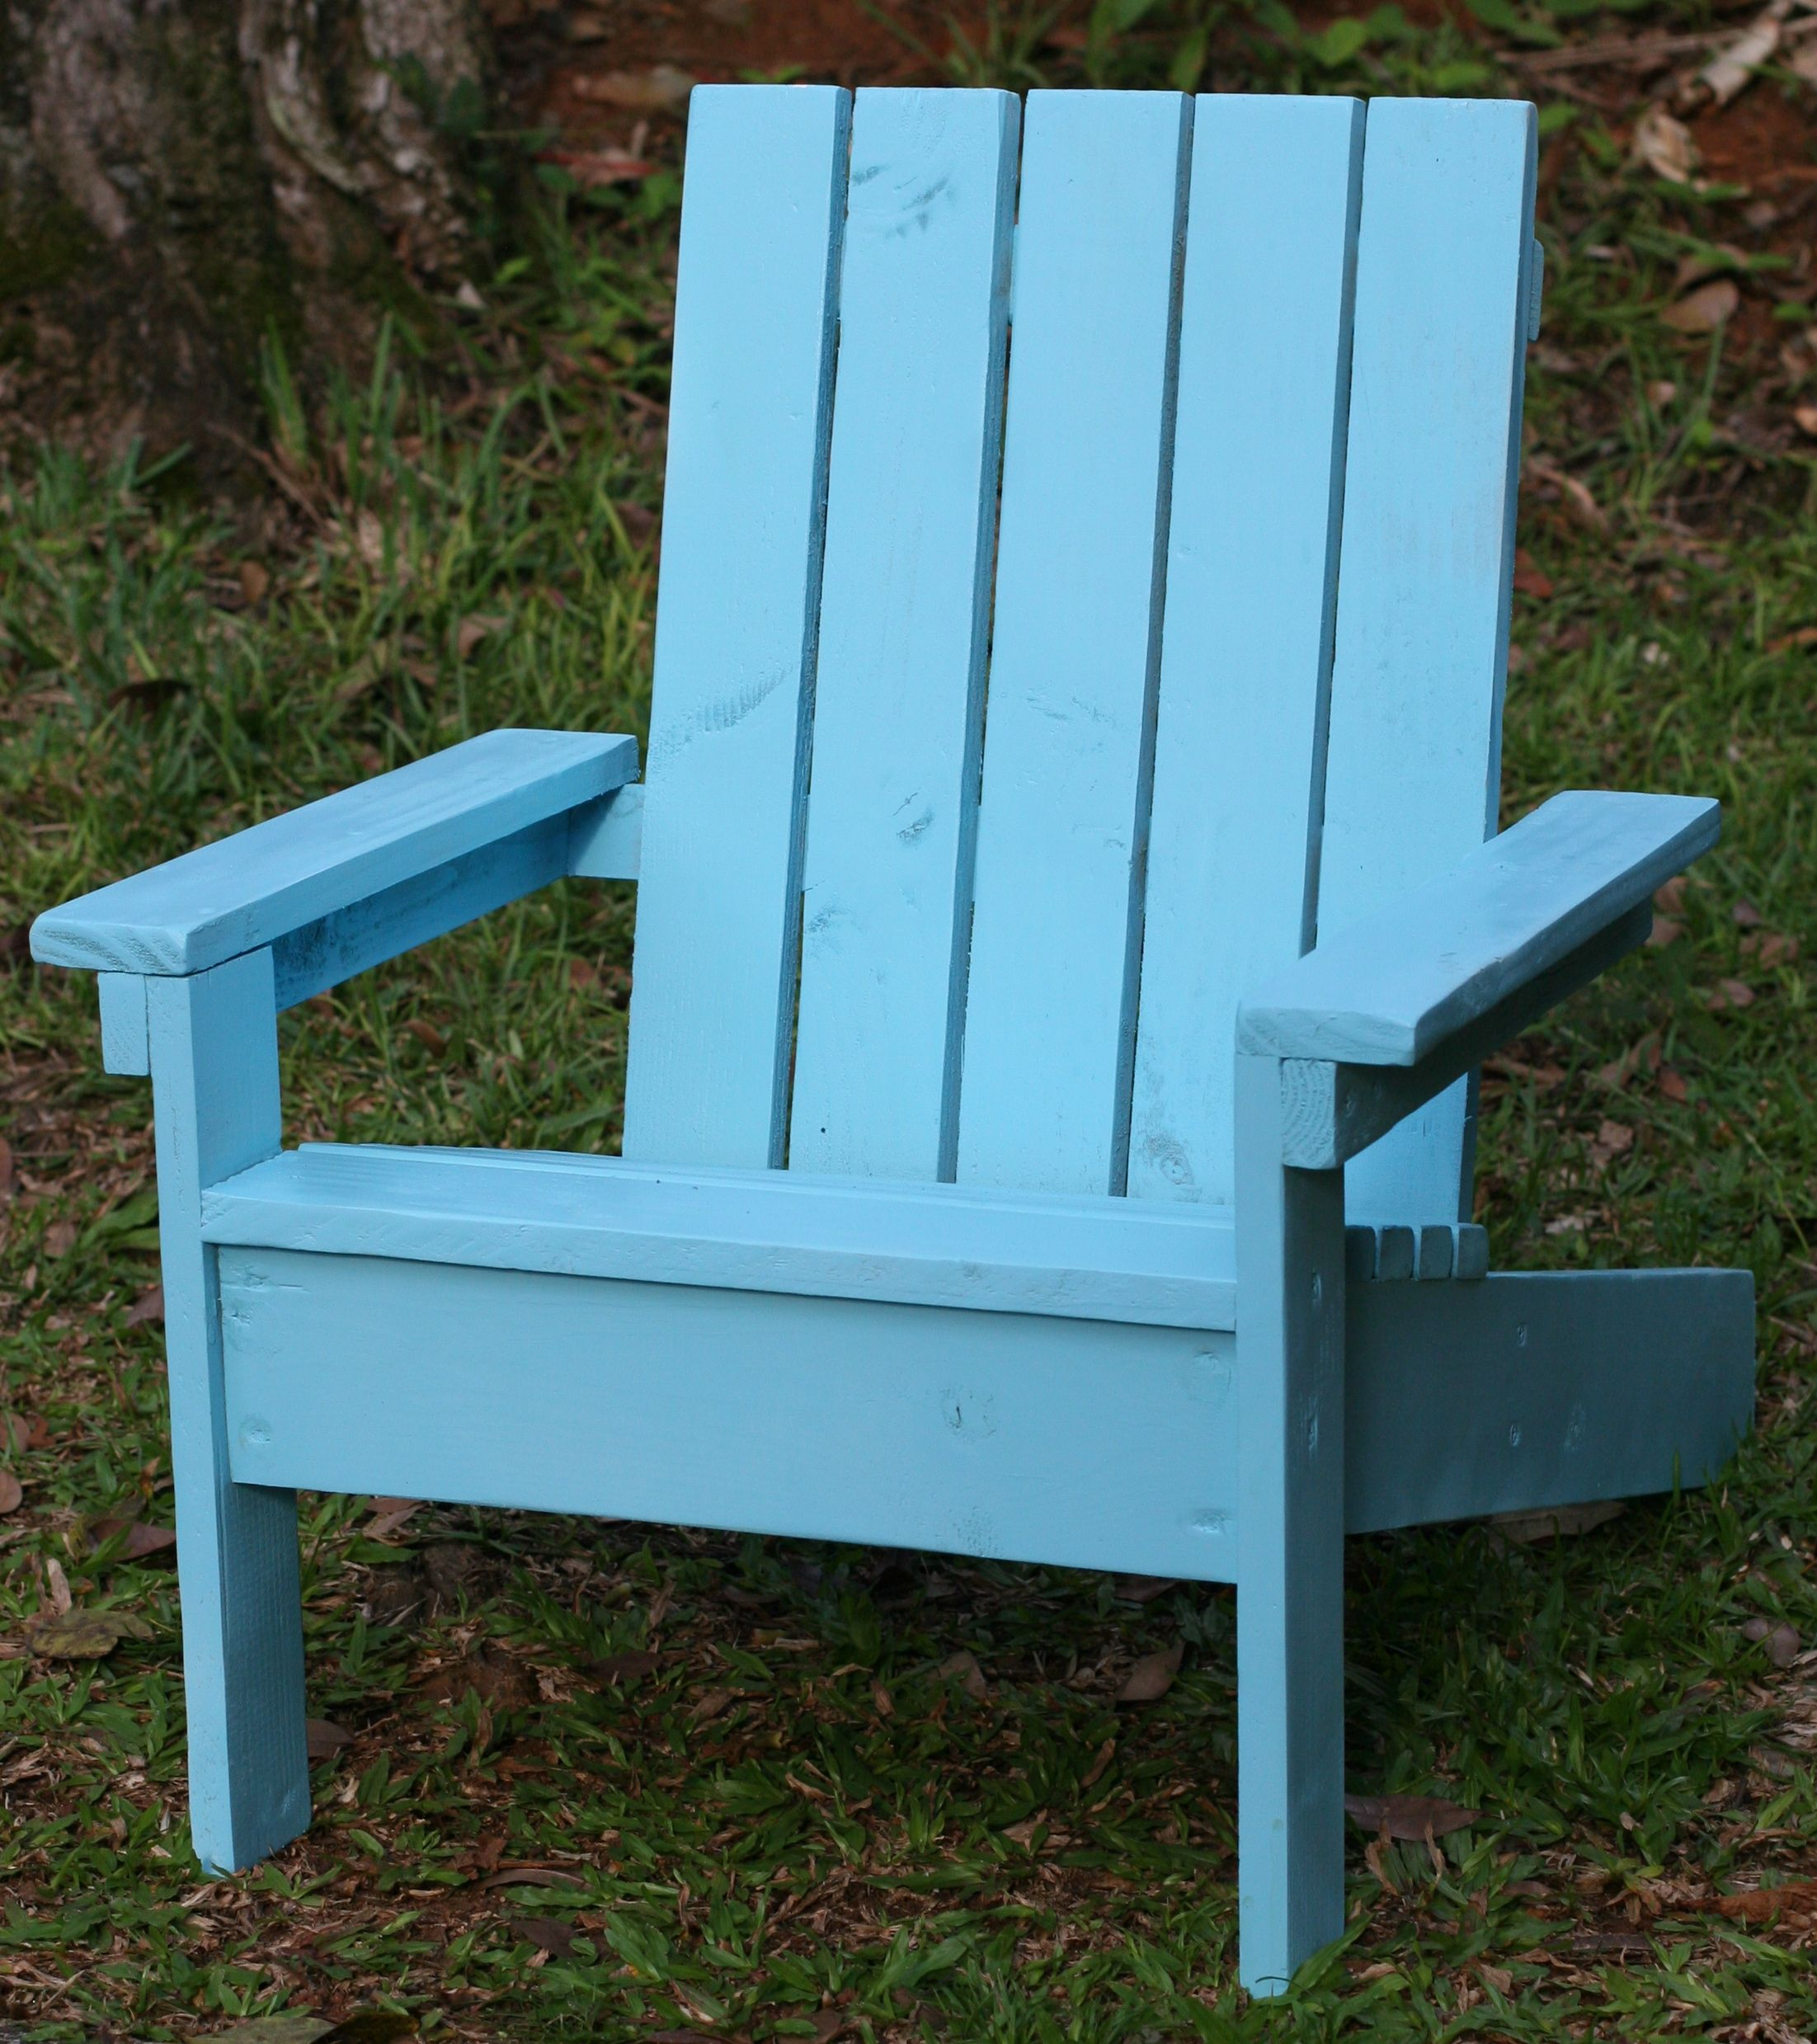 Double Adirondack Chairs With Umbrella Posture Chair For Office Kids Do It Yourself Home Projects From